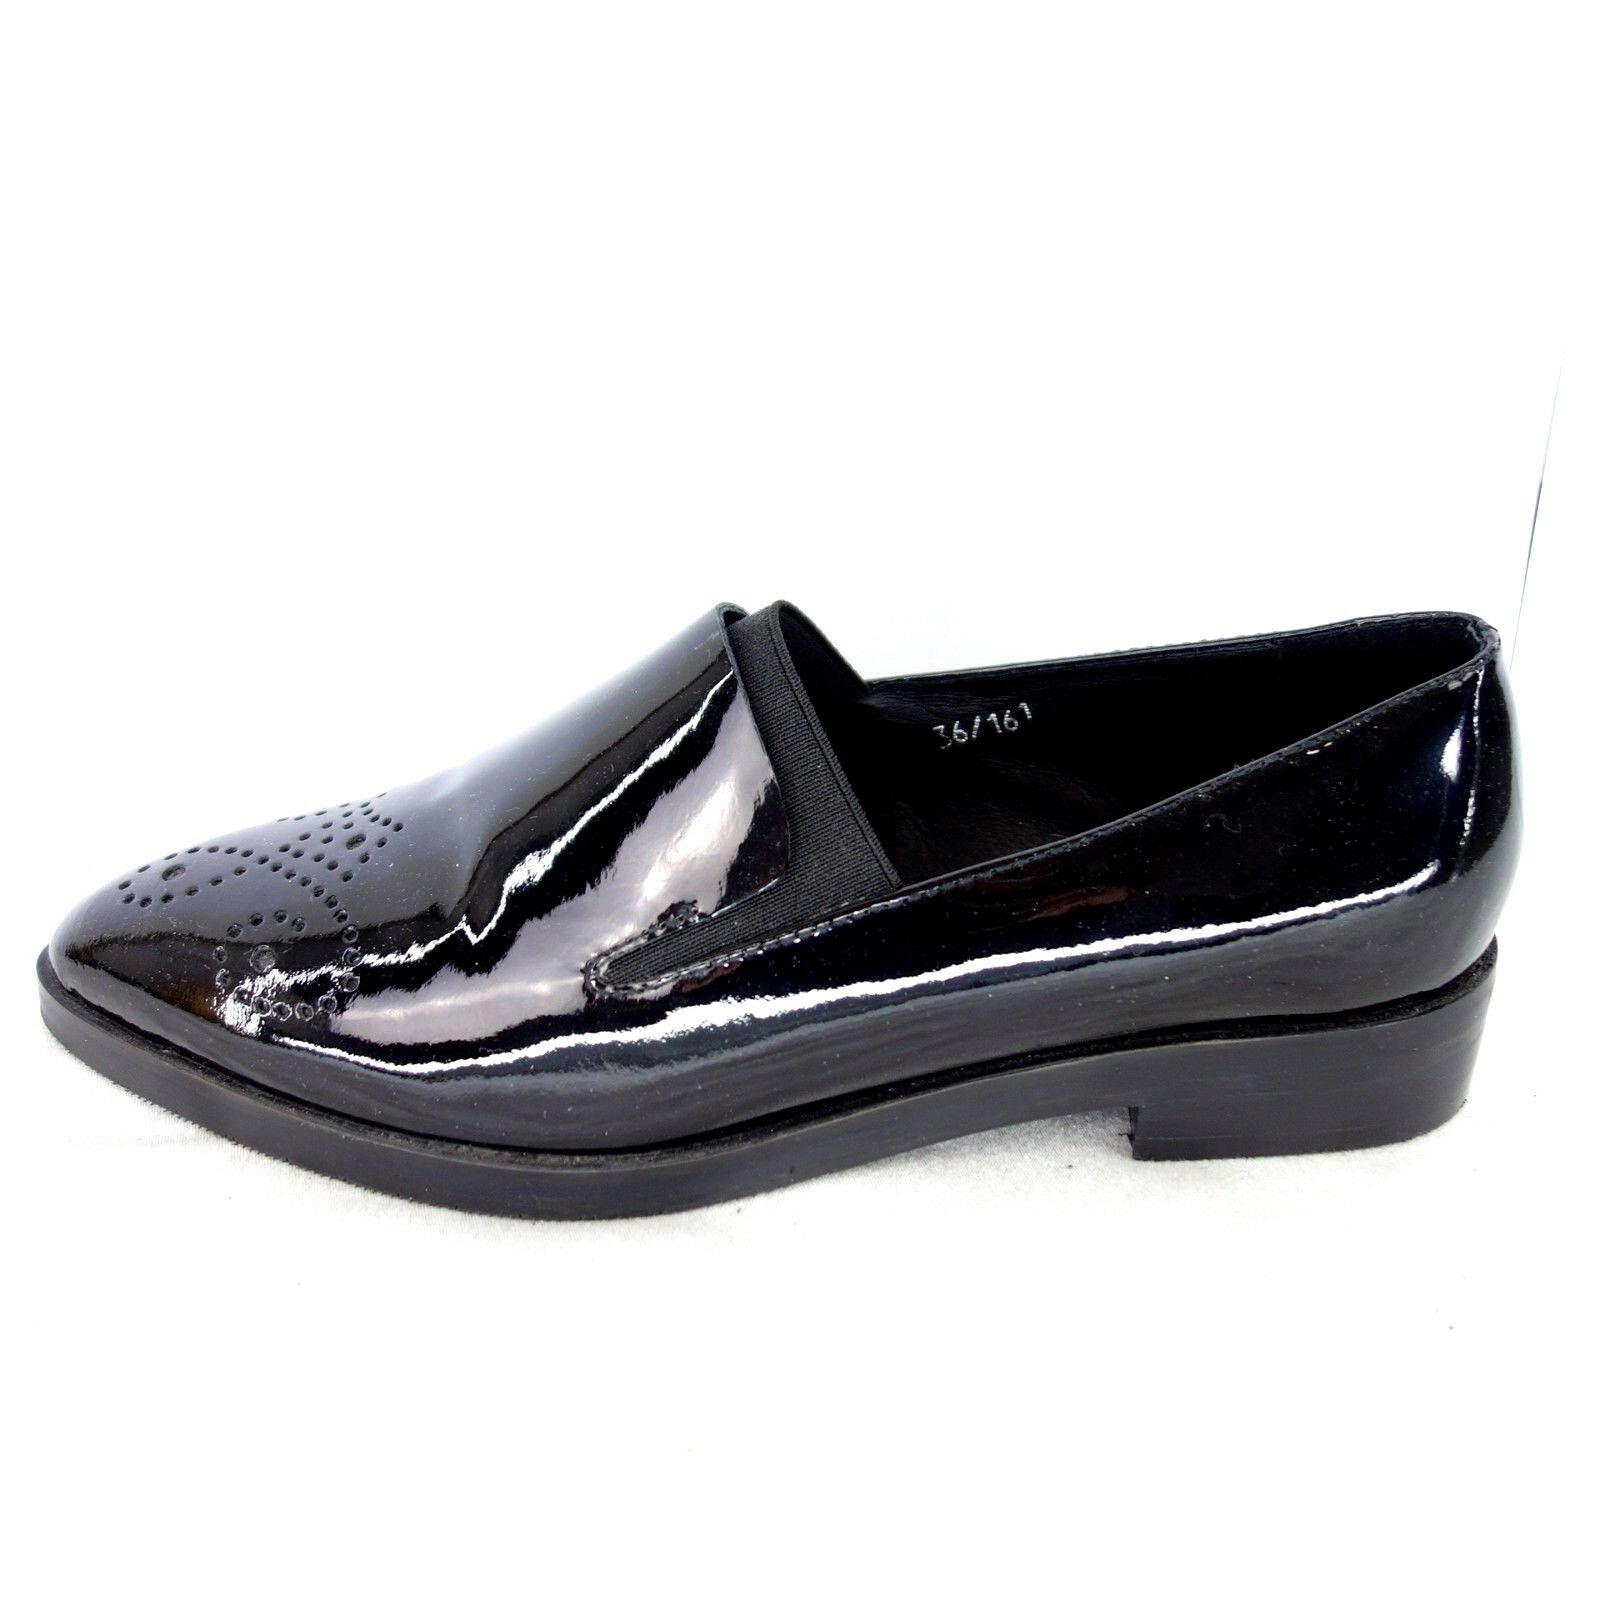 Bp Zone Ladies Loafers Low shoes Size 36 37 40 Black Patent Leather shoes Np 149